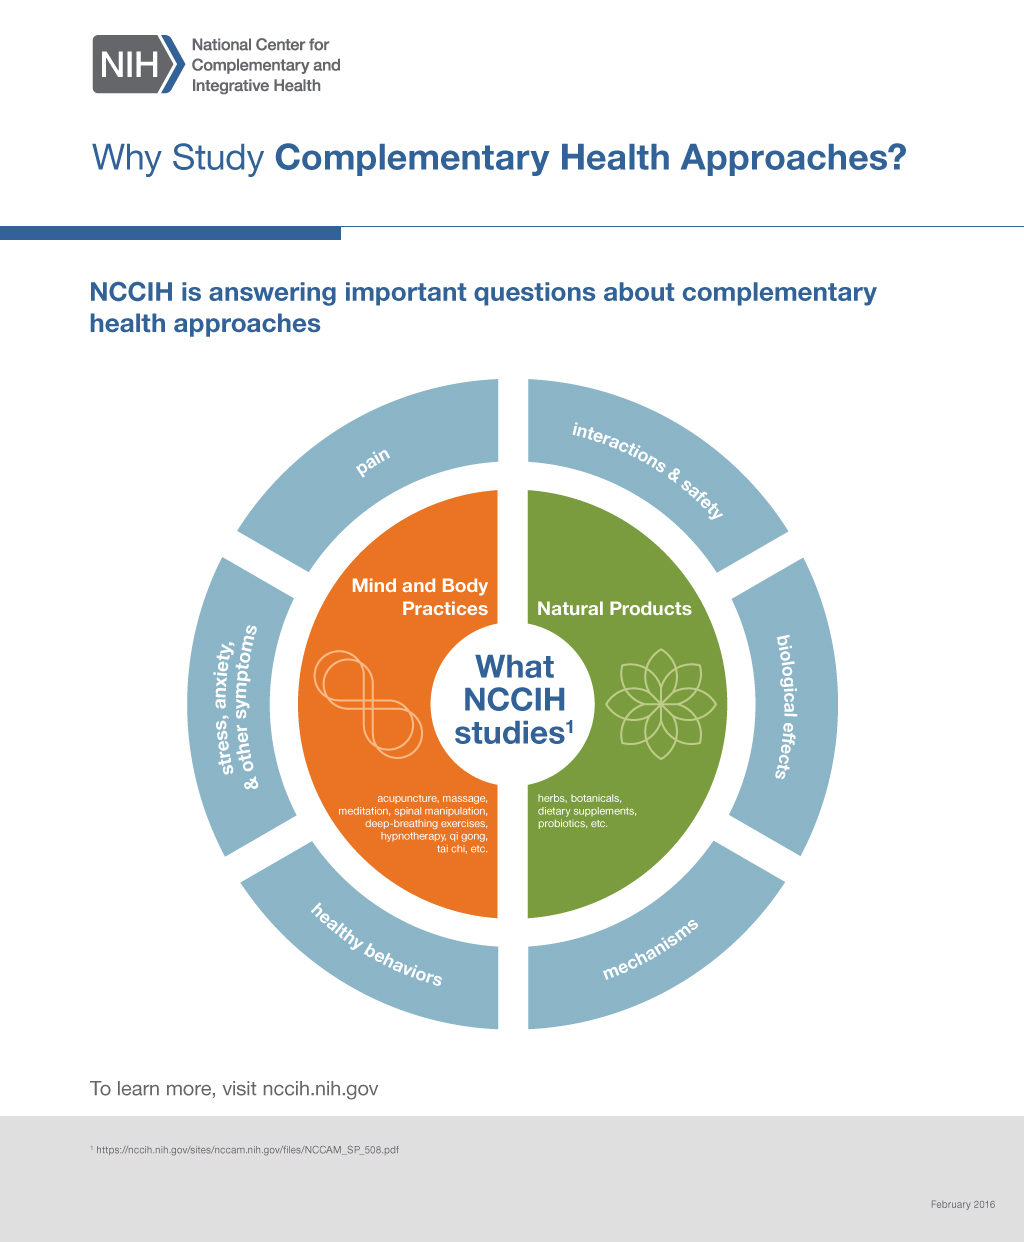 This graphic depicts two priority areas that NCCAM studies: mind and body practices and natural products.  Six important questions about complementary health approaches include: pain; interactions and safety; biological effects; mechanisms; healthy behaviors; and symptoms.